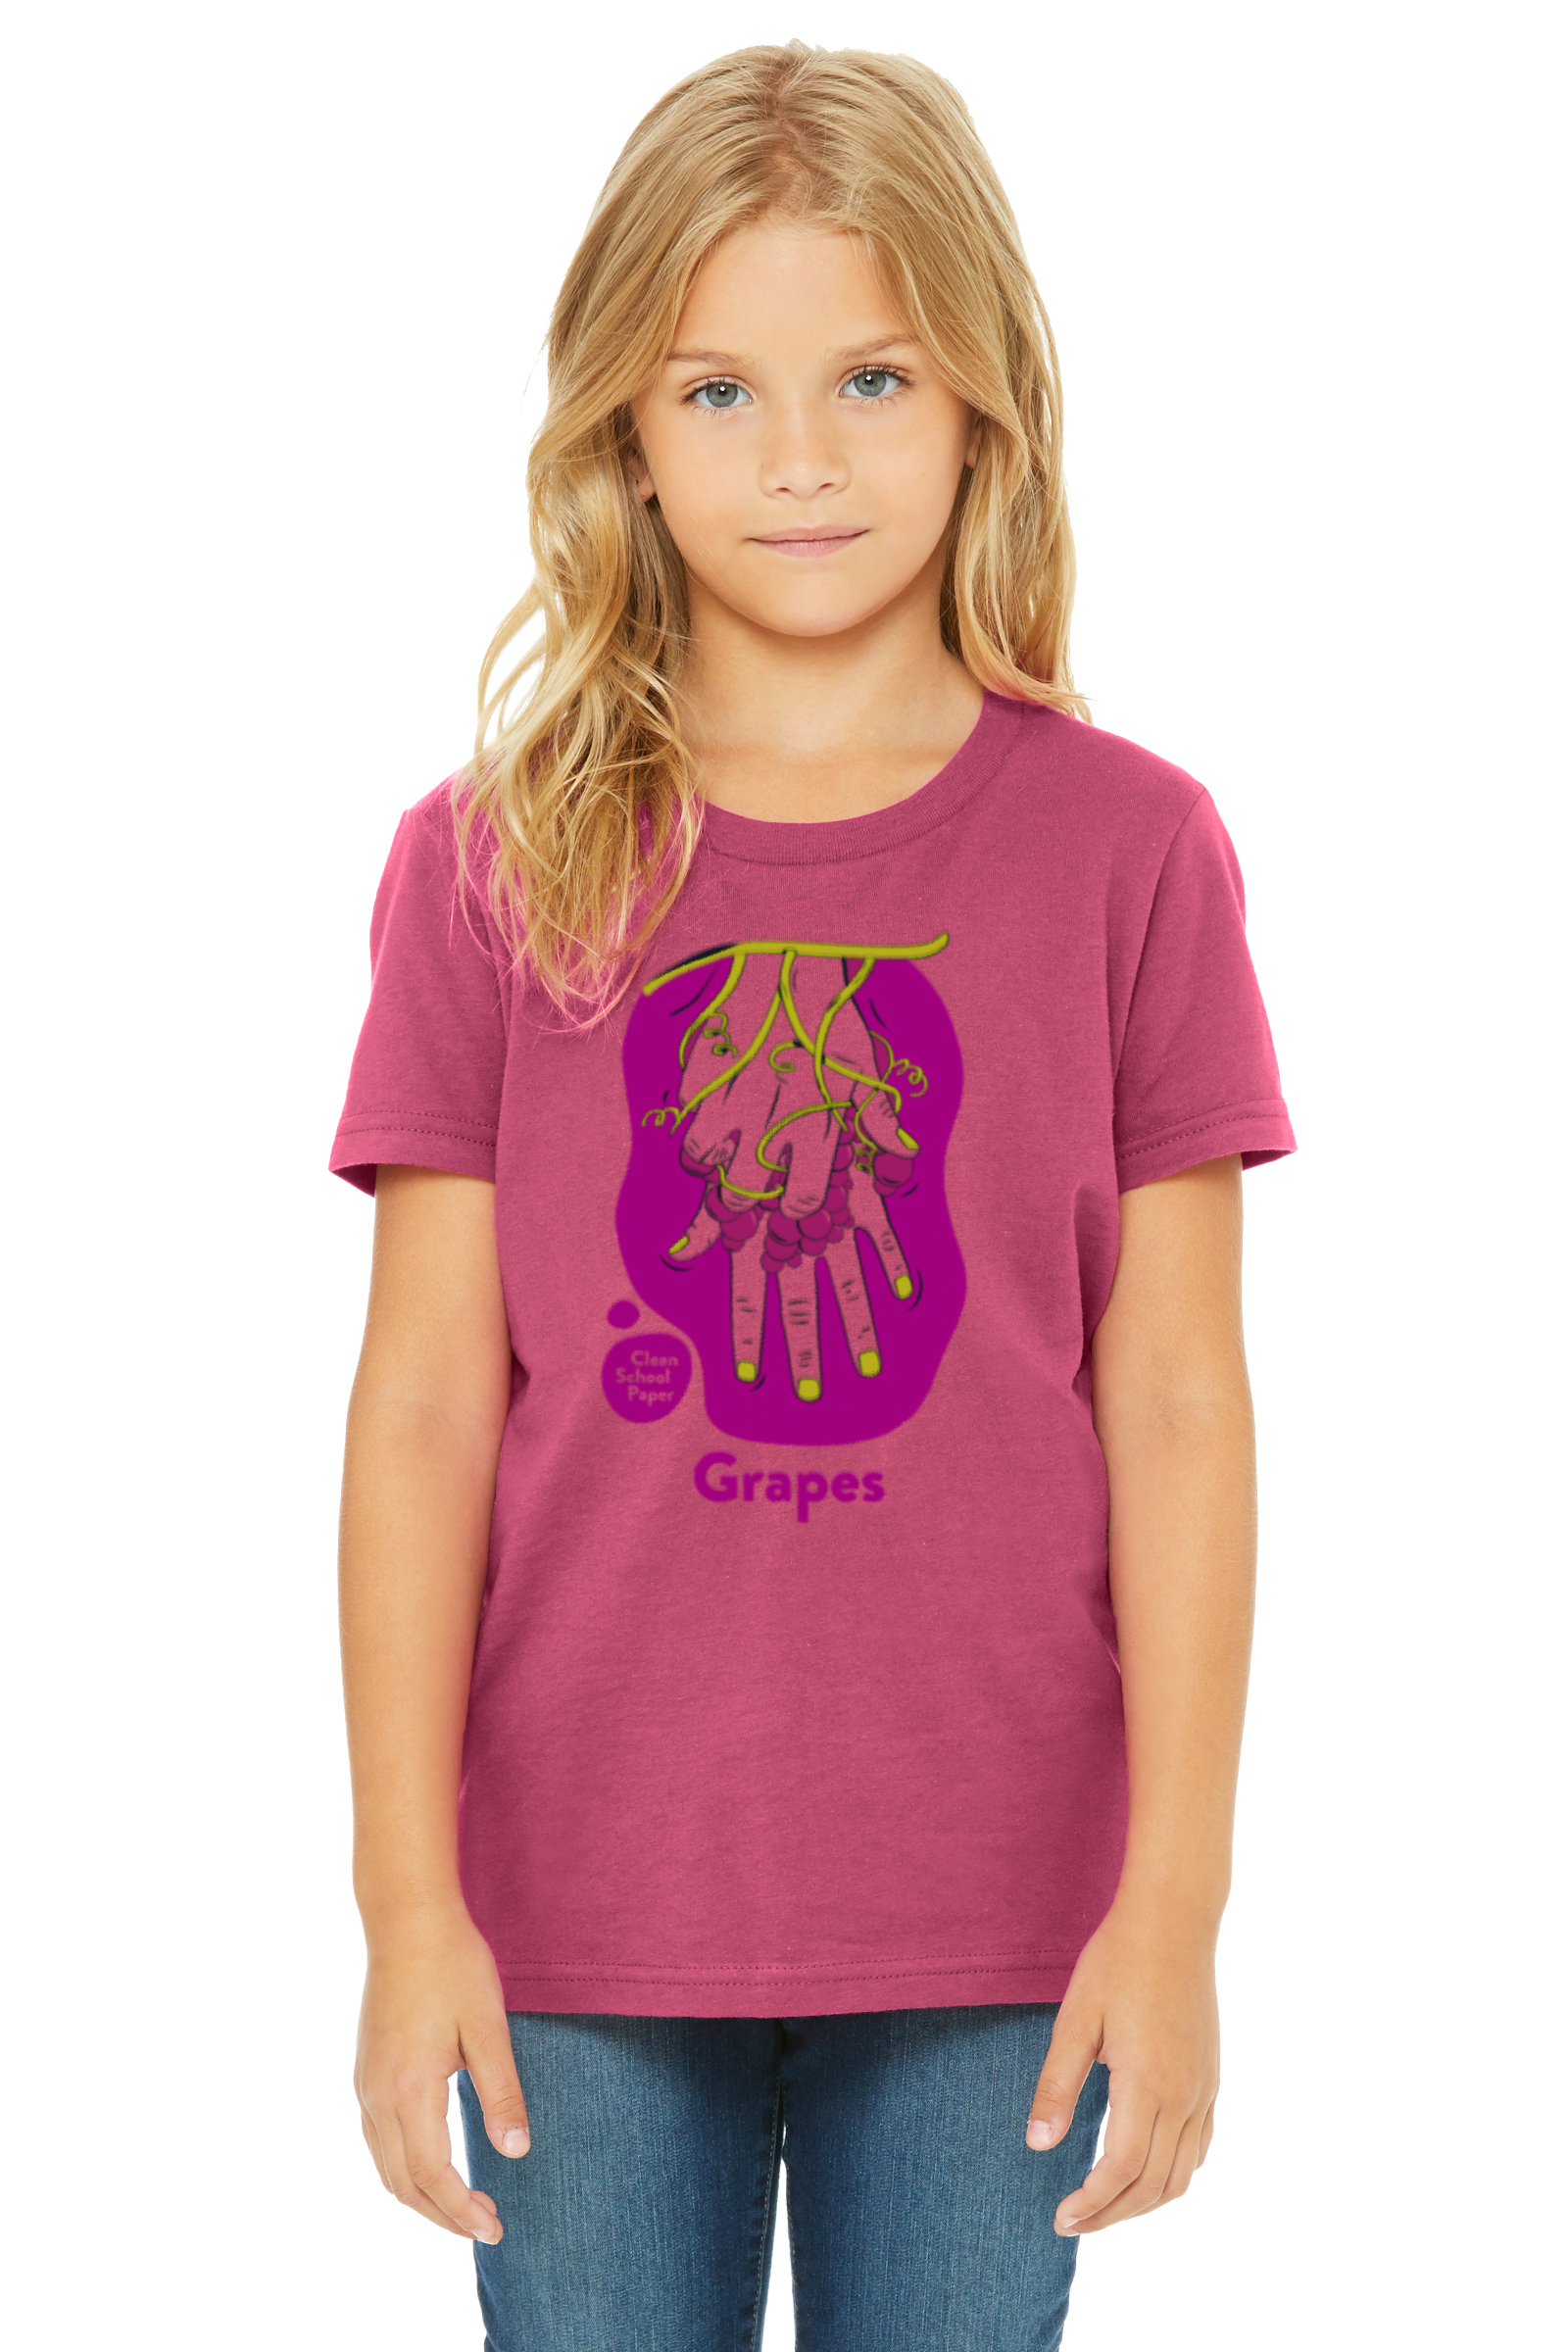 """ASL, American Sign Language Grapes T-Shirt. The ASL sign for """"grapes"""" on a berry t-shirt, worn by a young girl."""